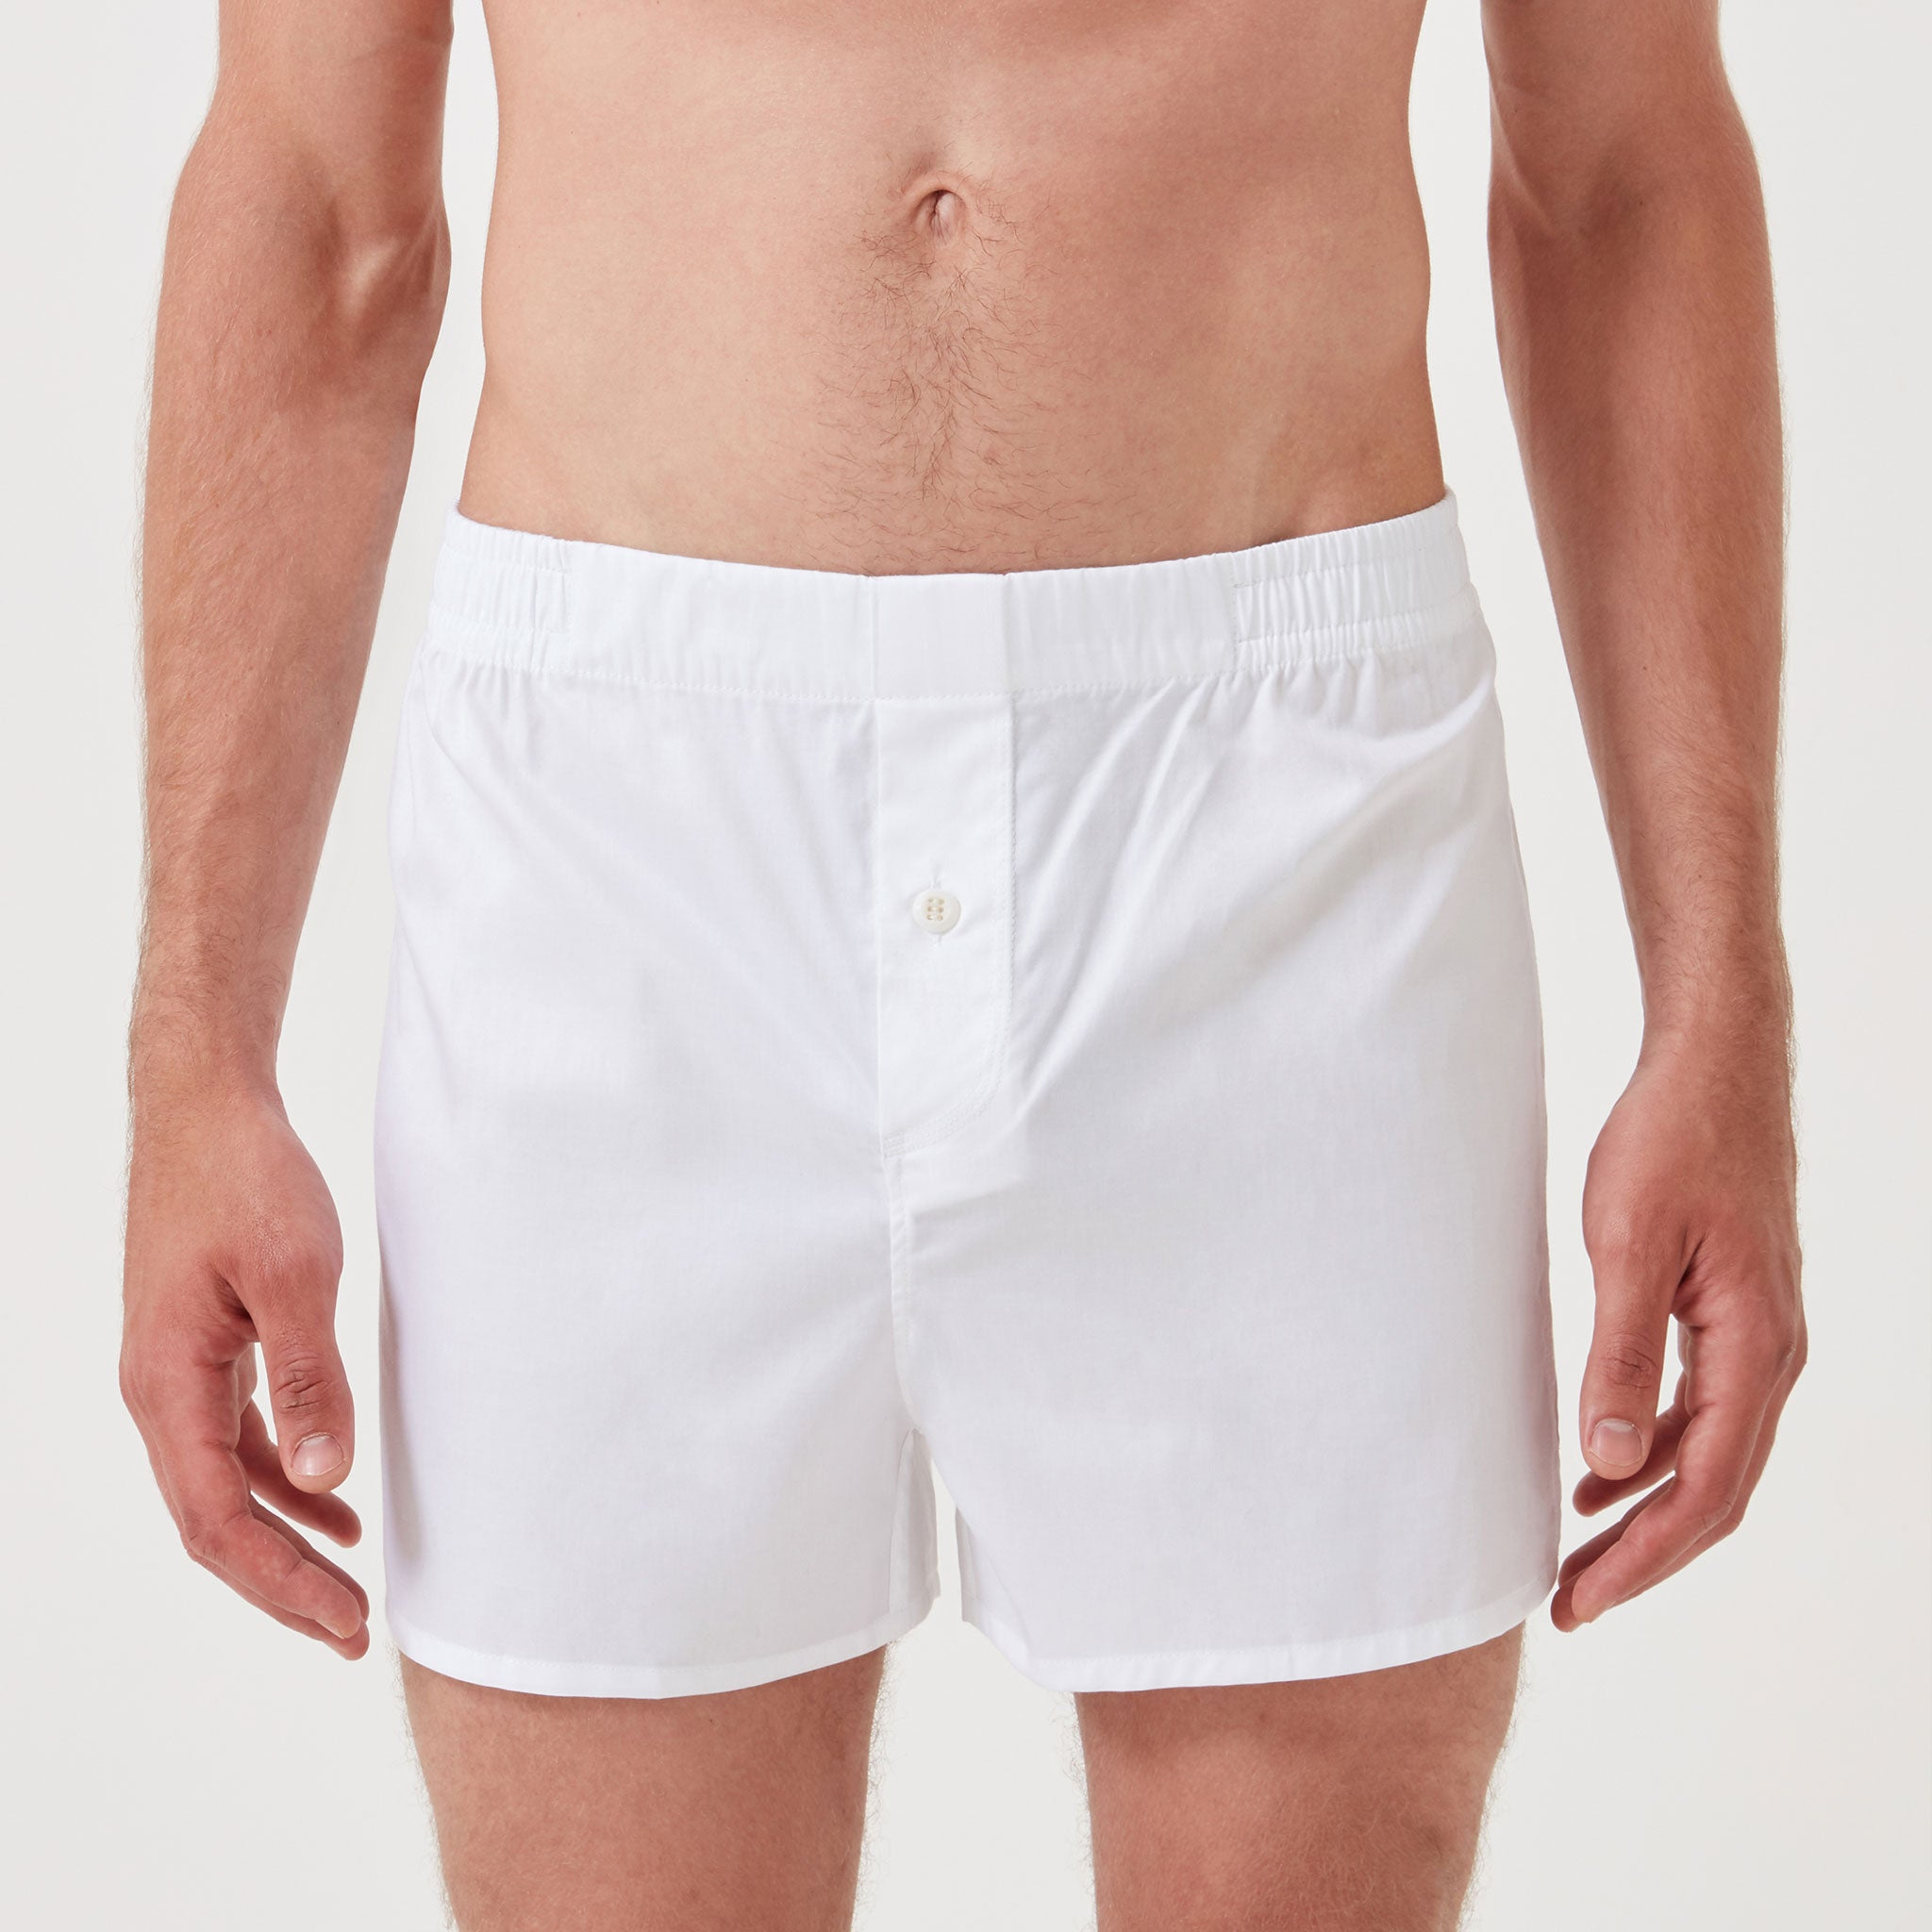 Monogrammed Boxer Short Classic White - Hamilton and Hare Ltd